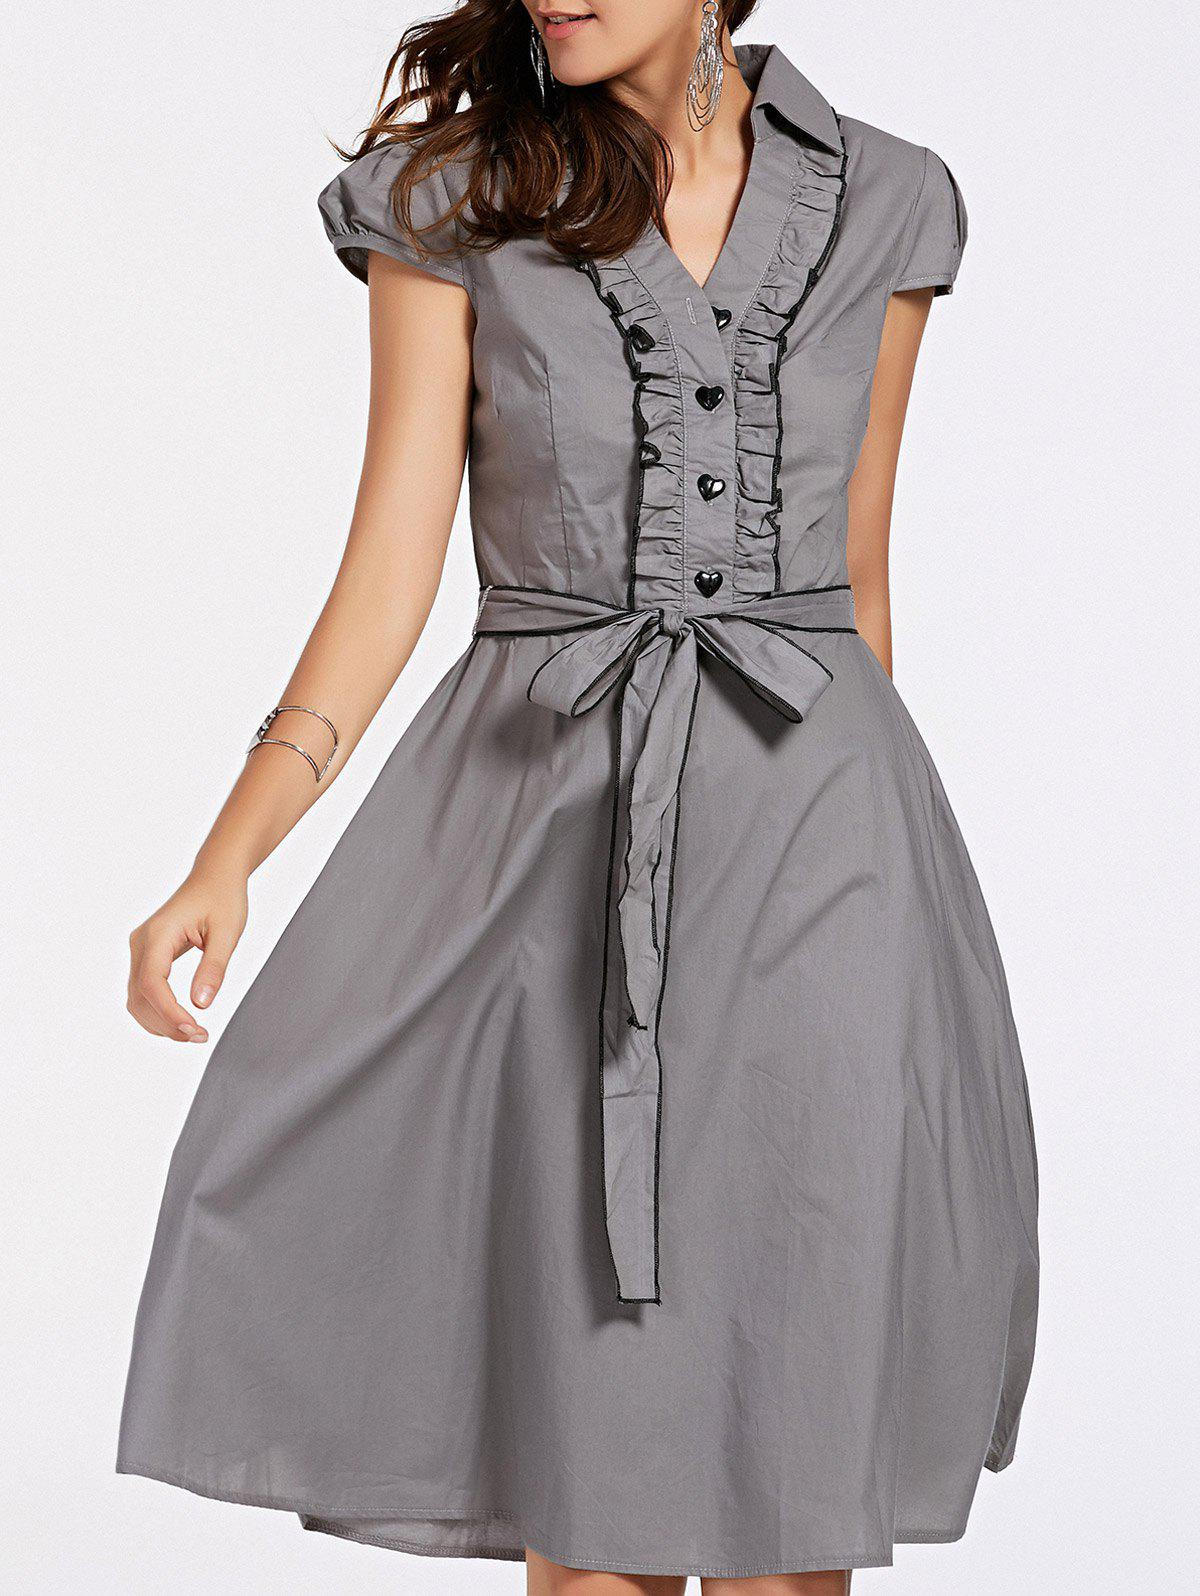 Stylish Women's Short Sleeve V-Neck Ruffled Belt-Tie Dress